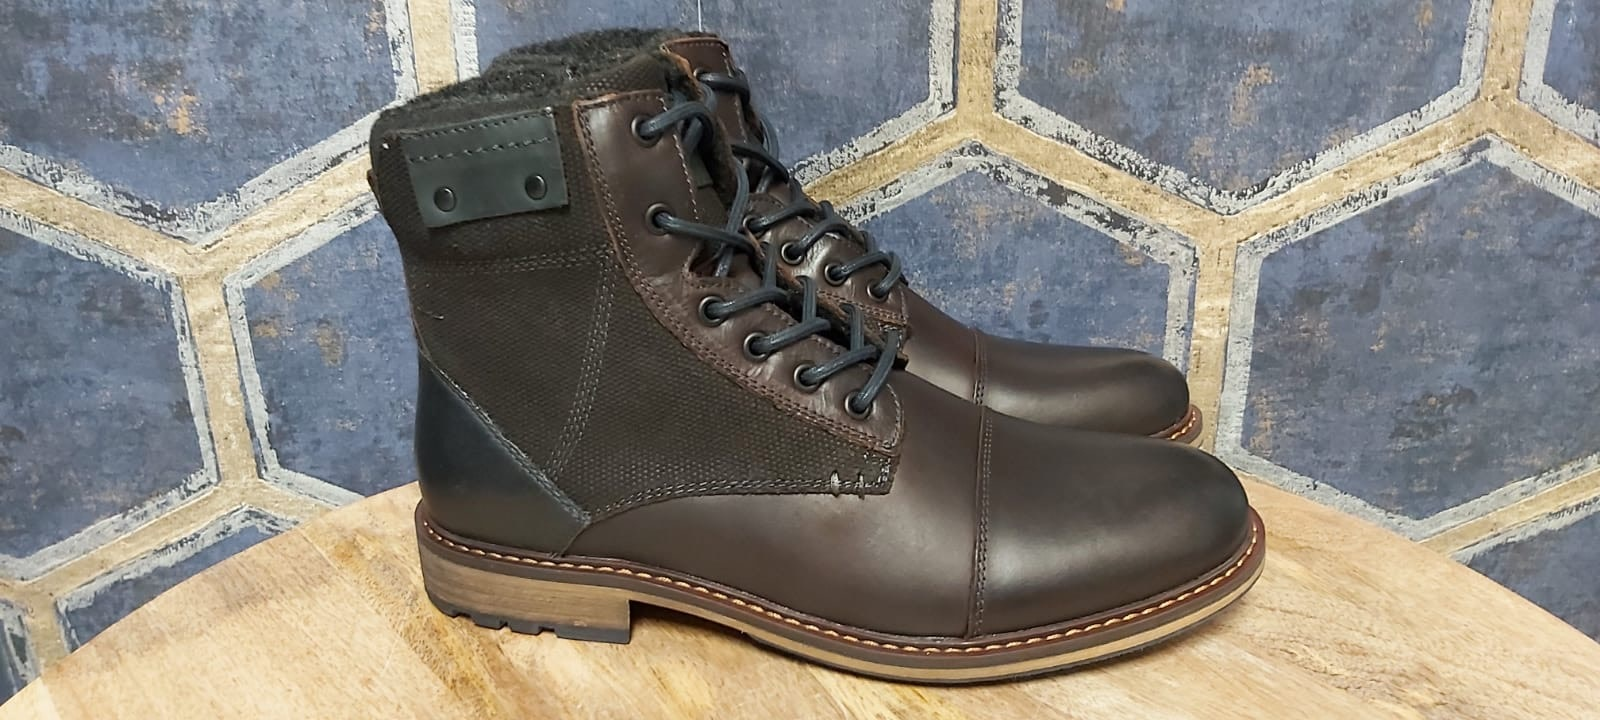 Mens Solara Boots - Brown w/ Navy Accents